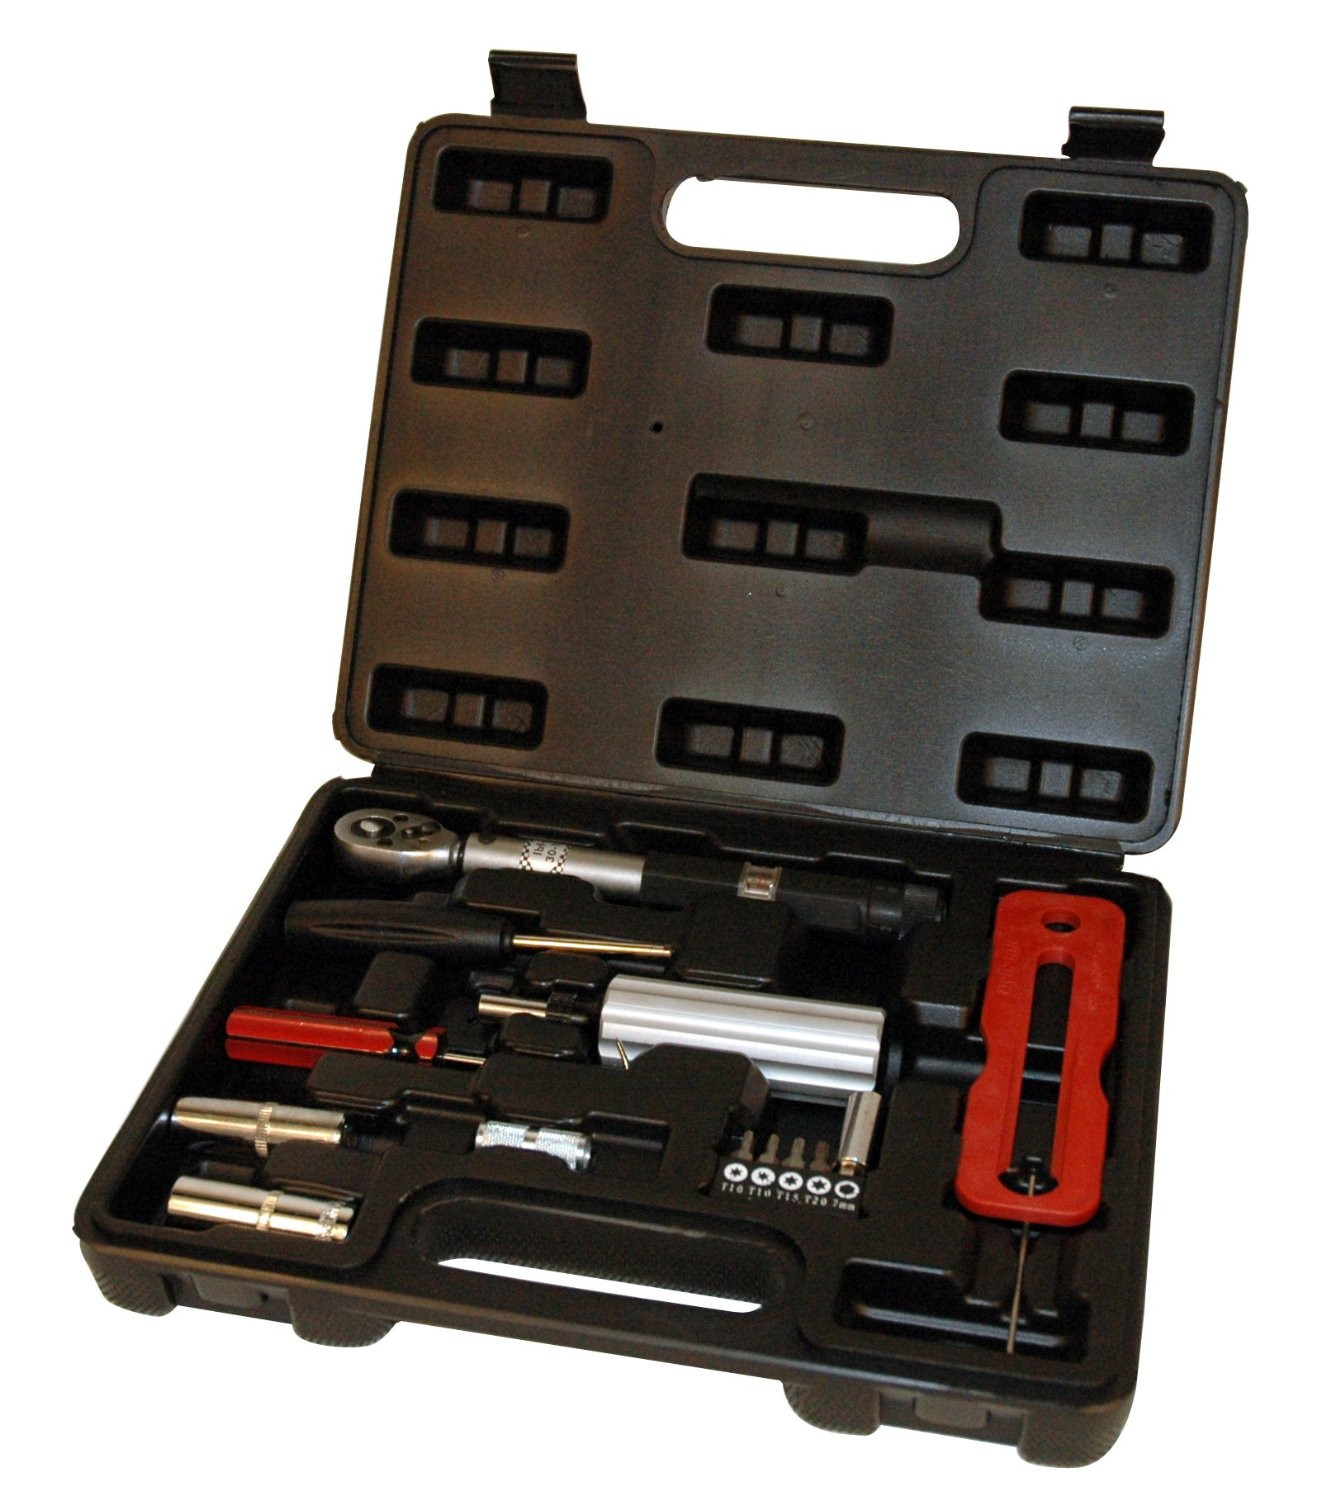 Dynamic TPMS Service Tool Kit Torque Wrench Core Tool and Grommet Tools